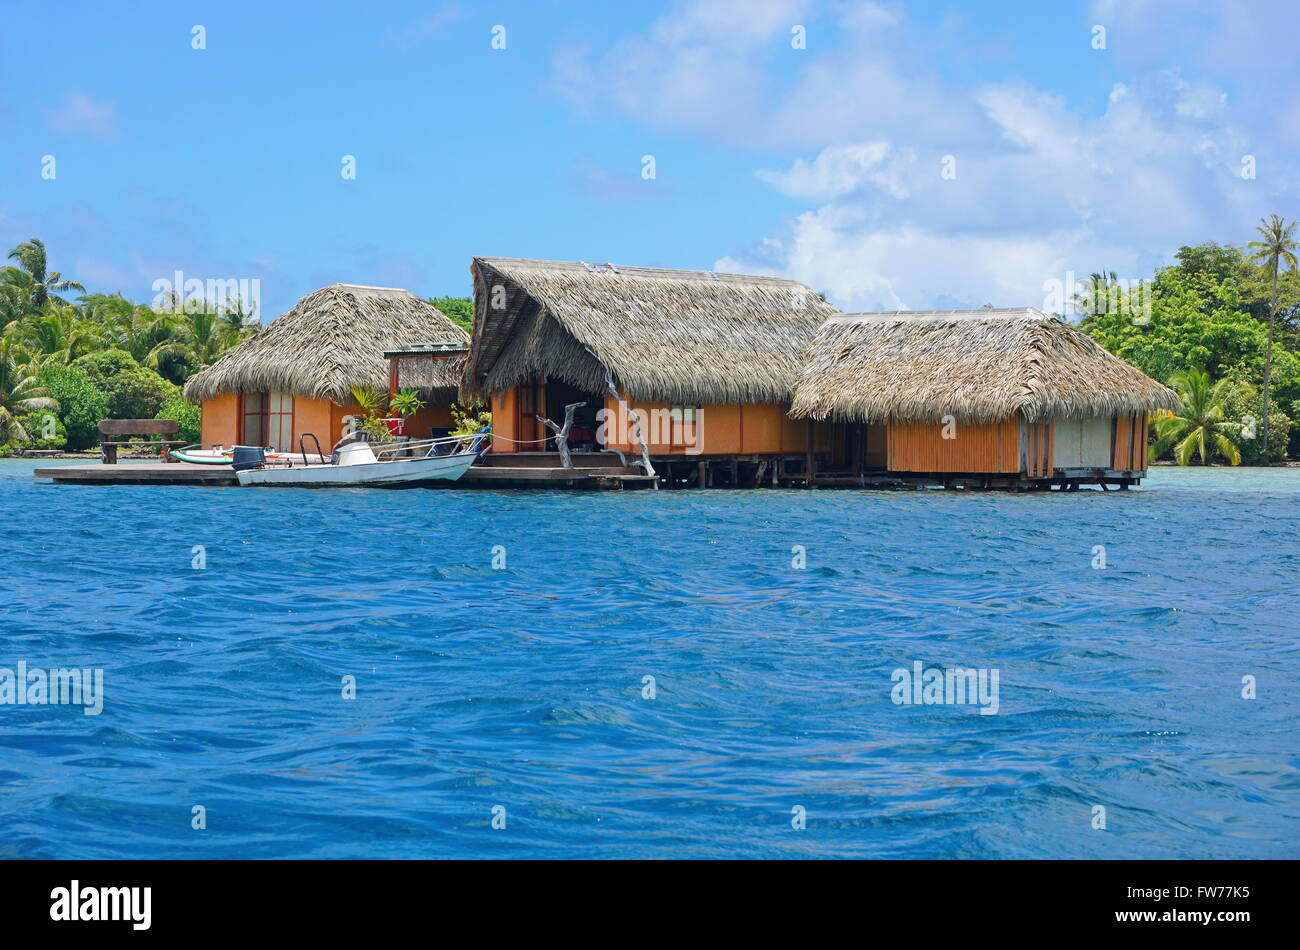 tropical-home-over-water-with-thatched-roof-and-a-boat-at-dock-huahine-FW77K5.jpg